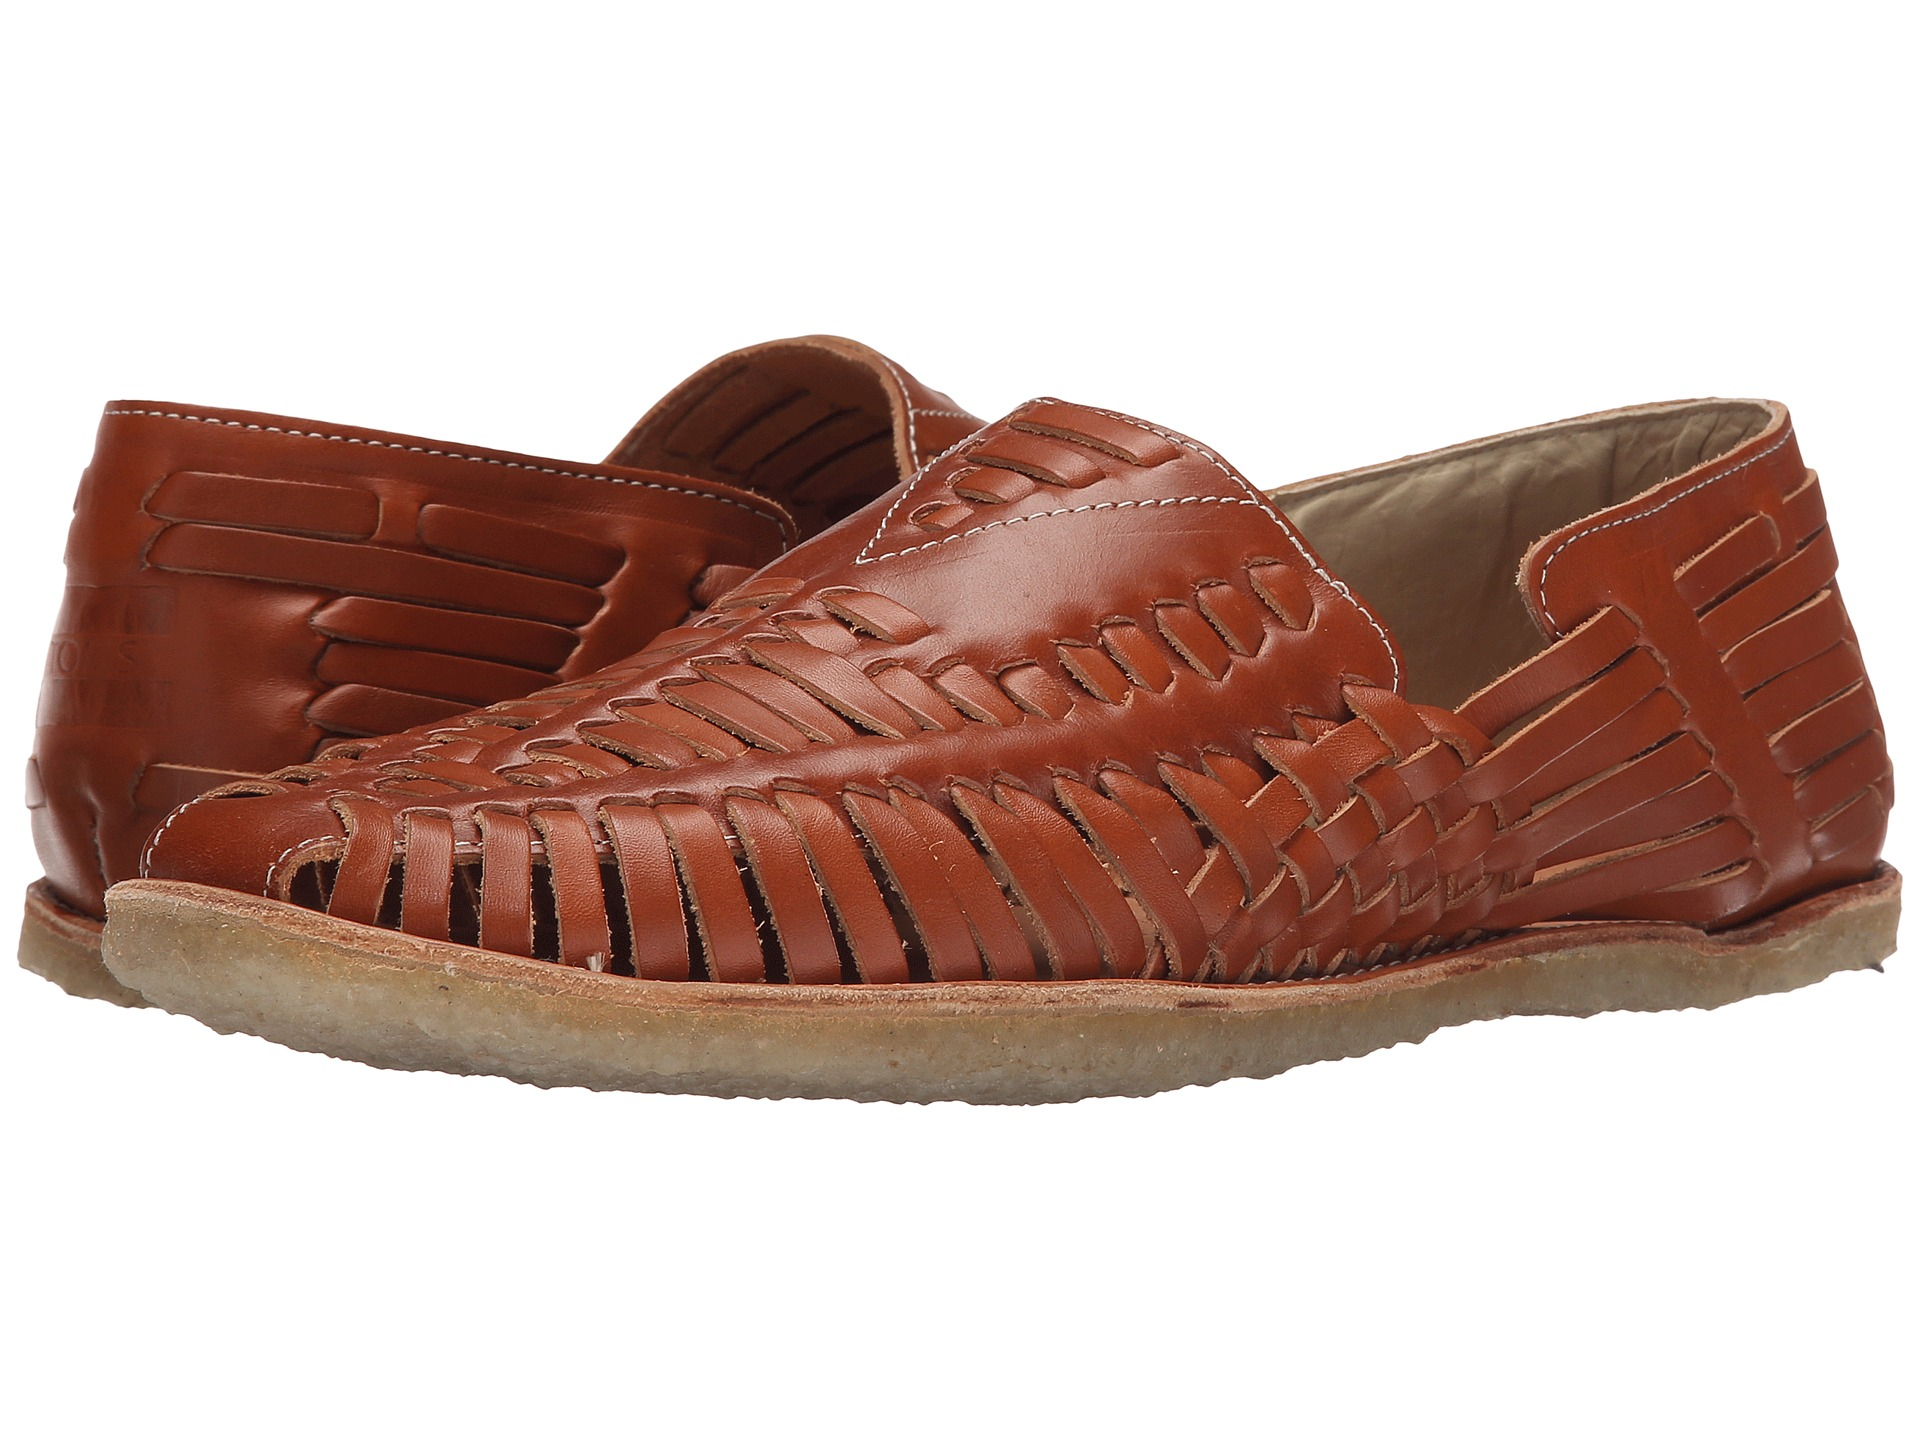 3d0ca71a6 TOMS Huarache Slip-on in Brown for Men - Lyst